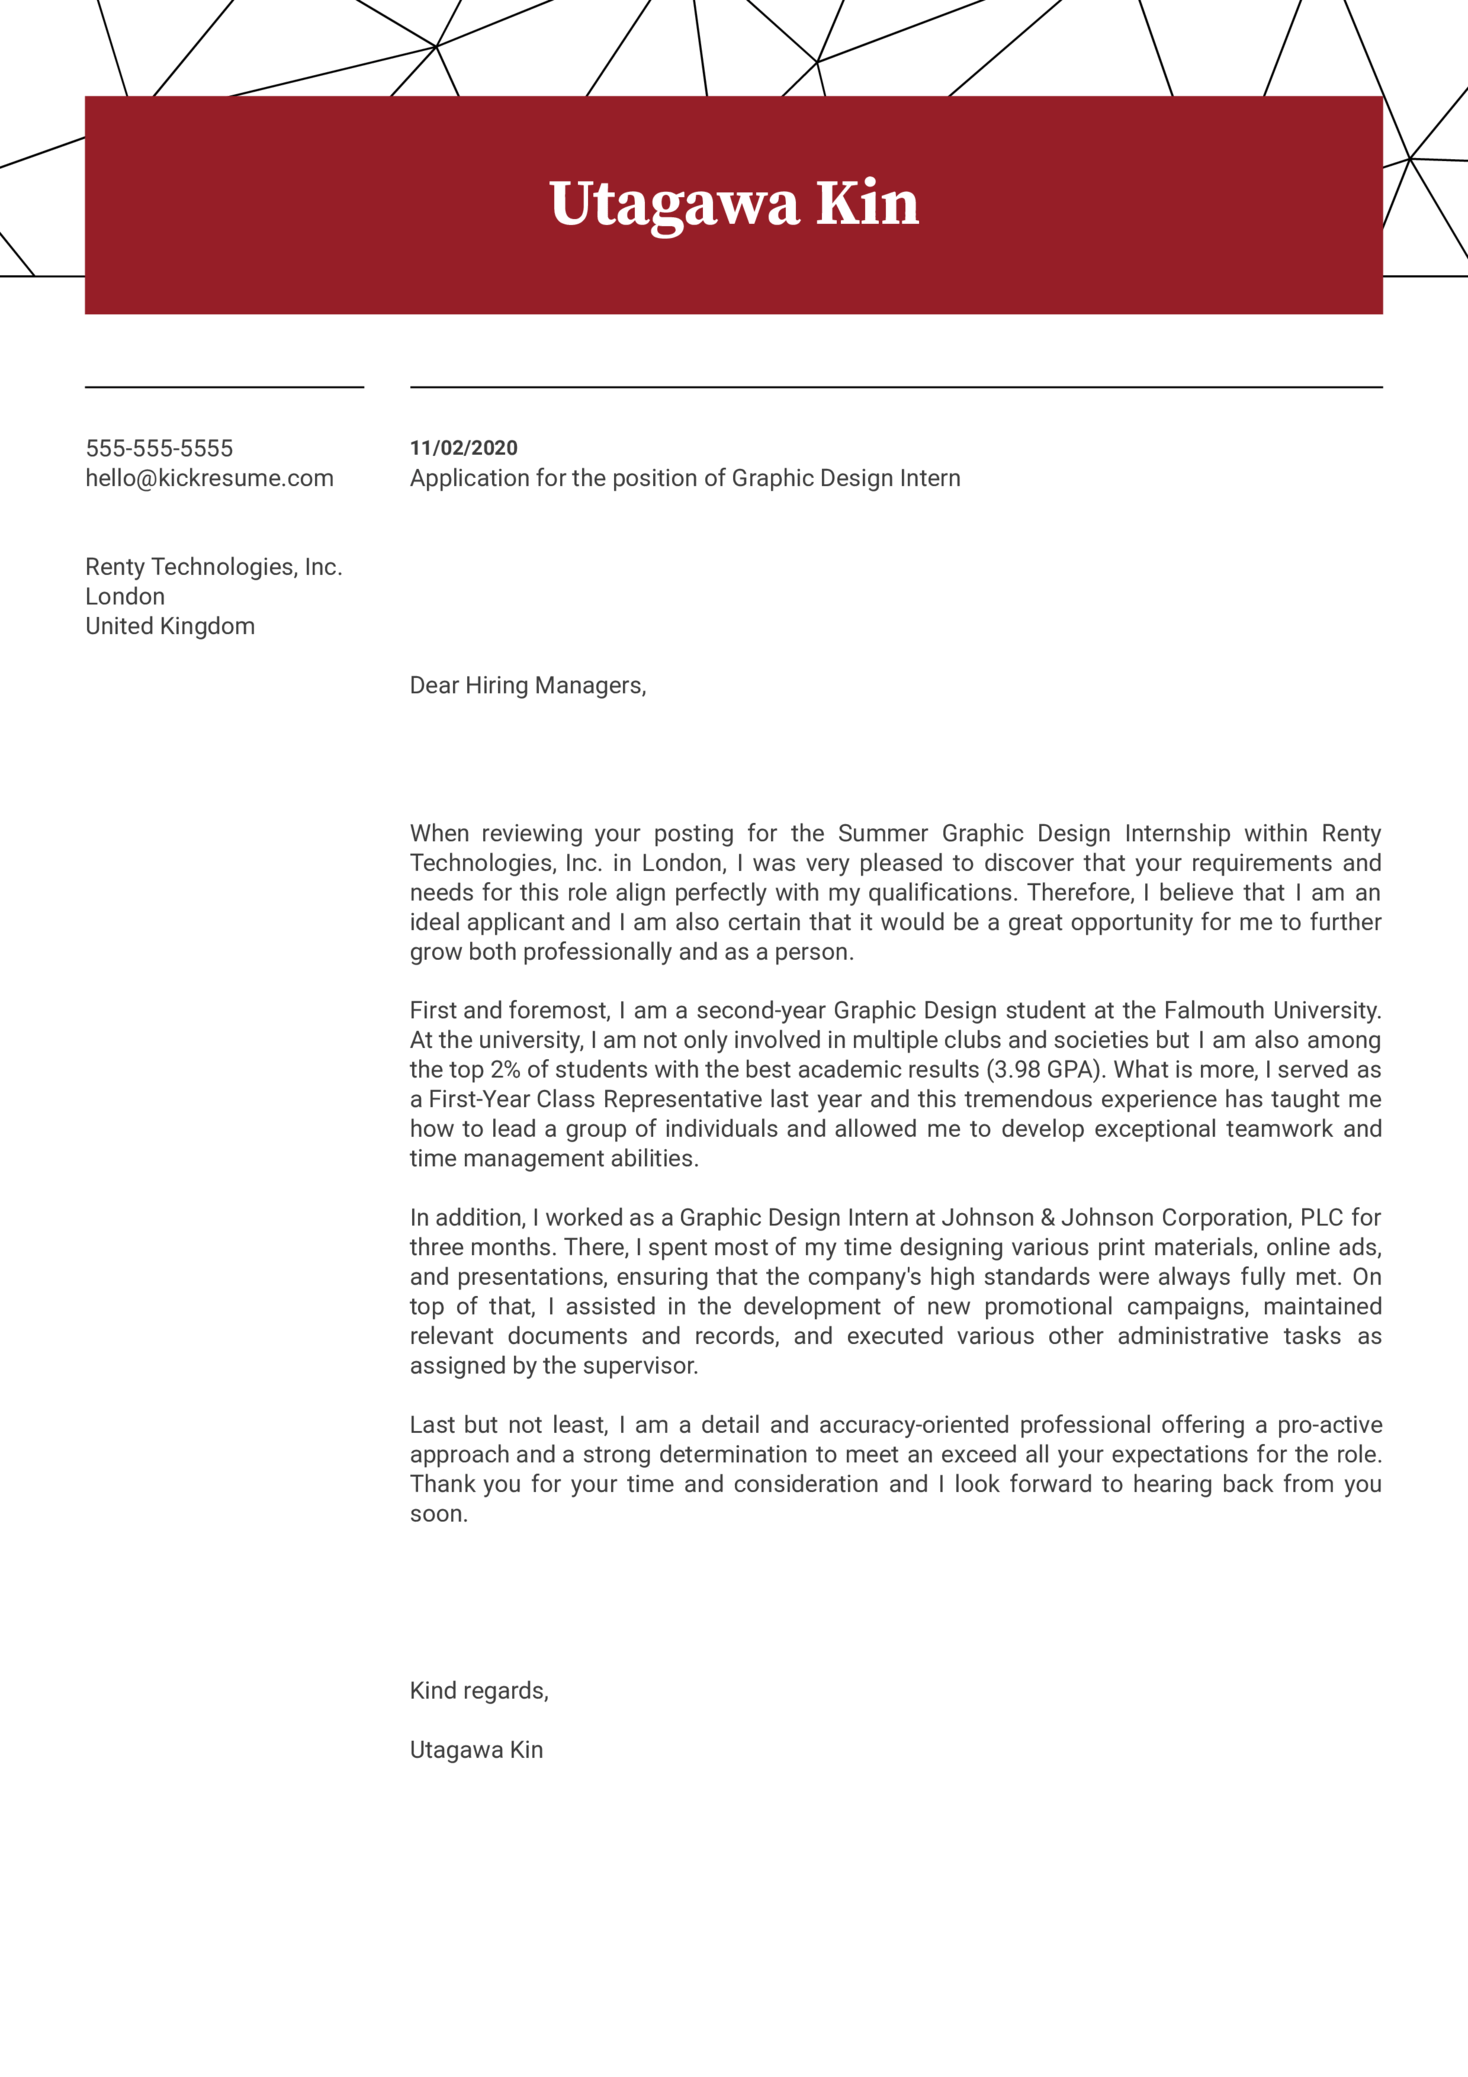 Graphic Design Internship Cover Letter Example